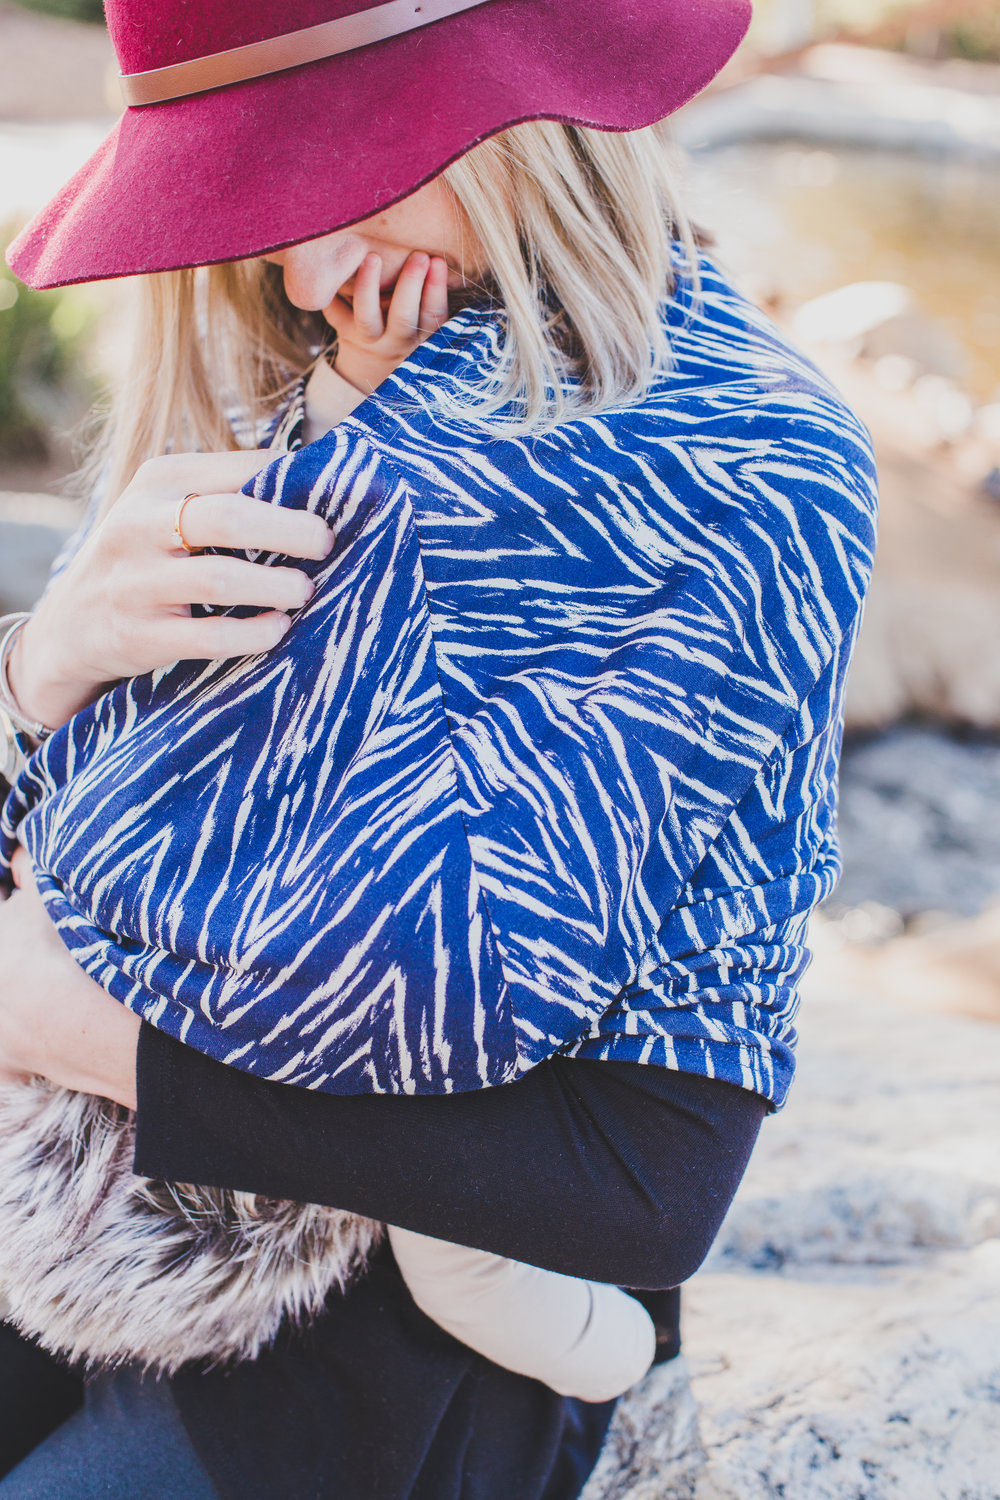 Multi-Use Nursing Covers - Lightweight Breastfeeding Covers - The Blissful Trenders